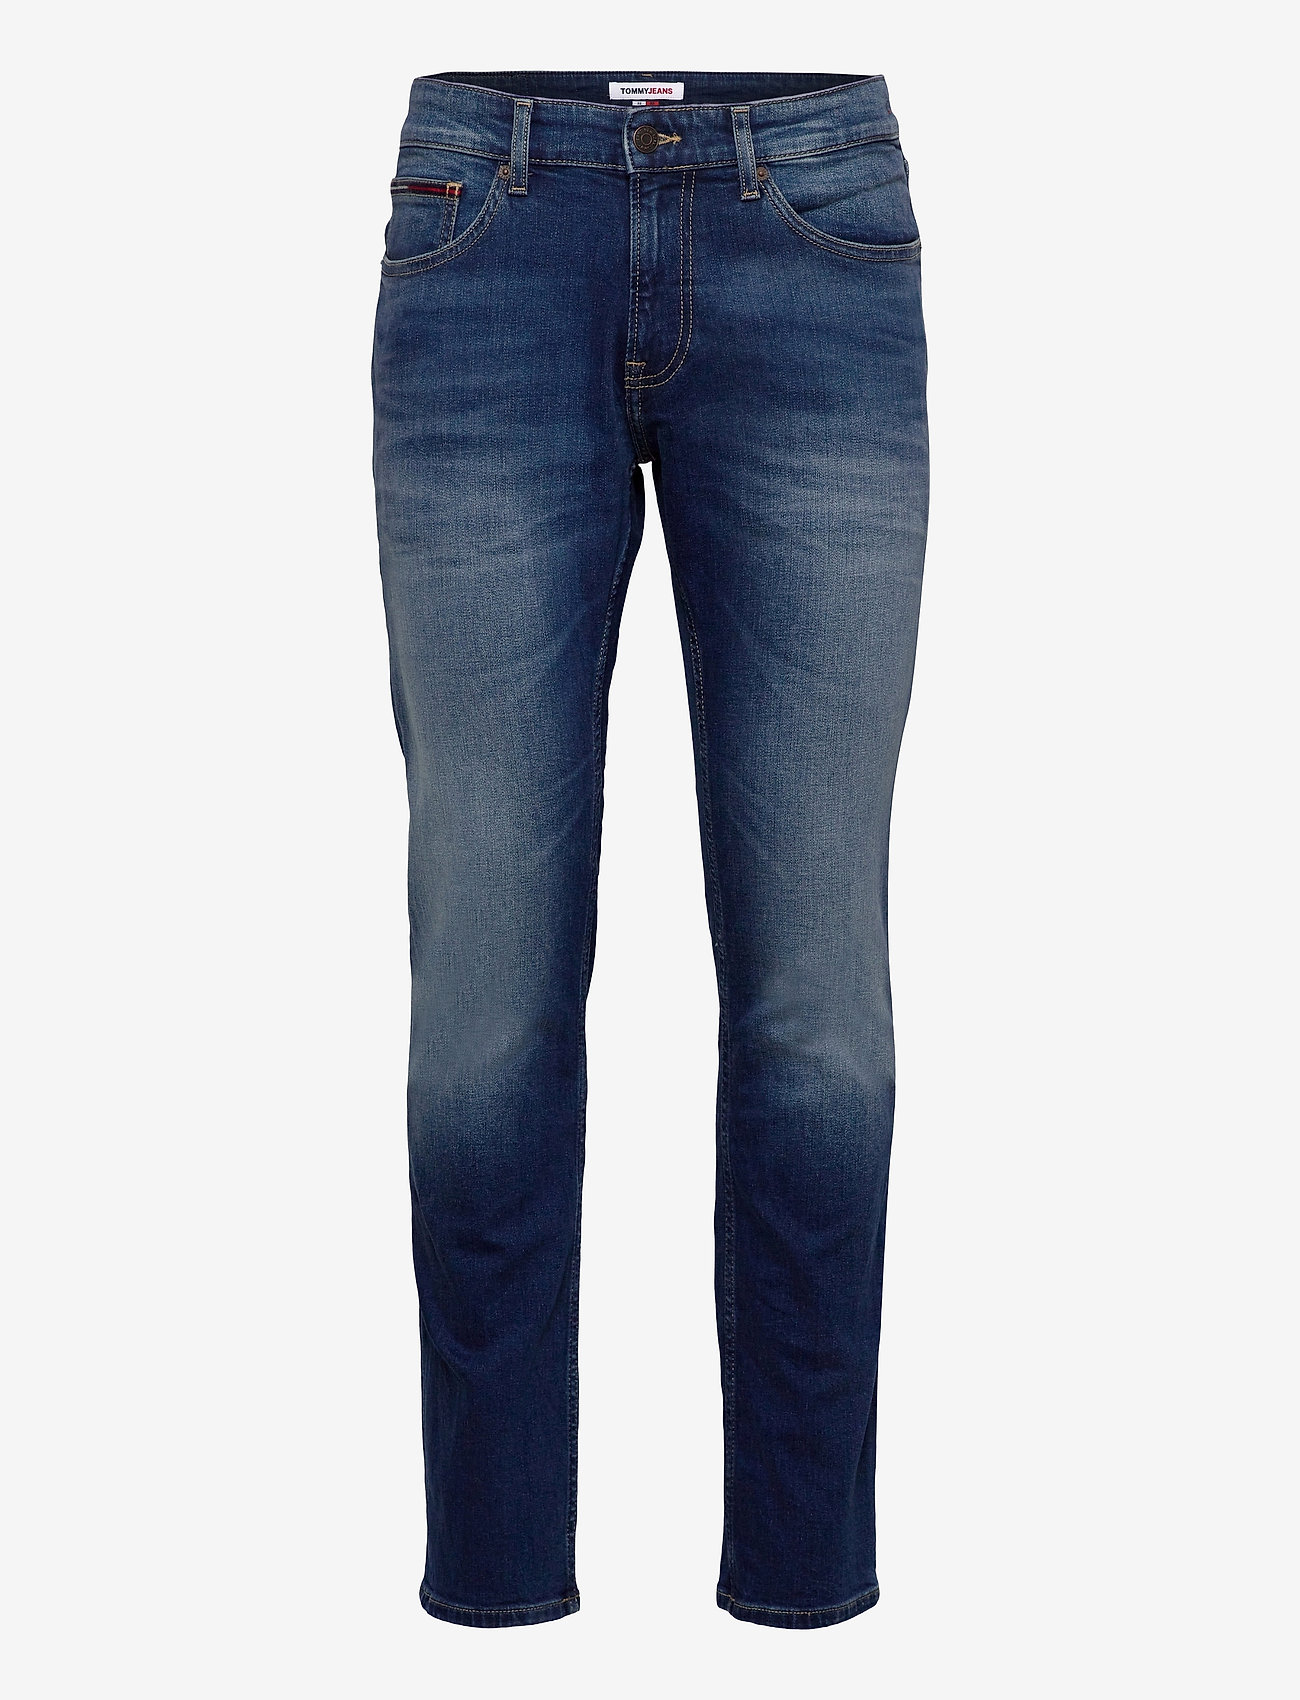 Tommy Jeans - SCANTON SLIM WMBS - slim jeans - wilson mid blue stretch - 0